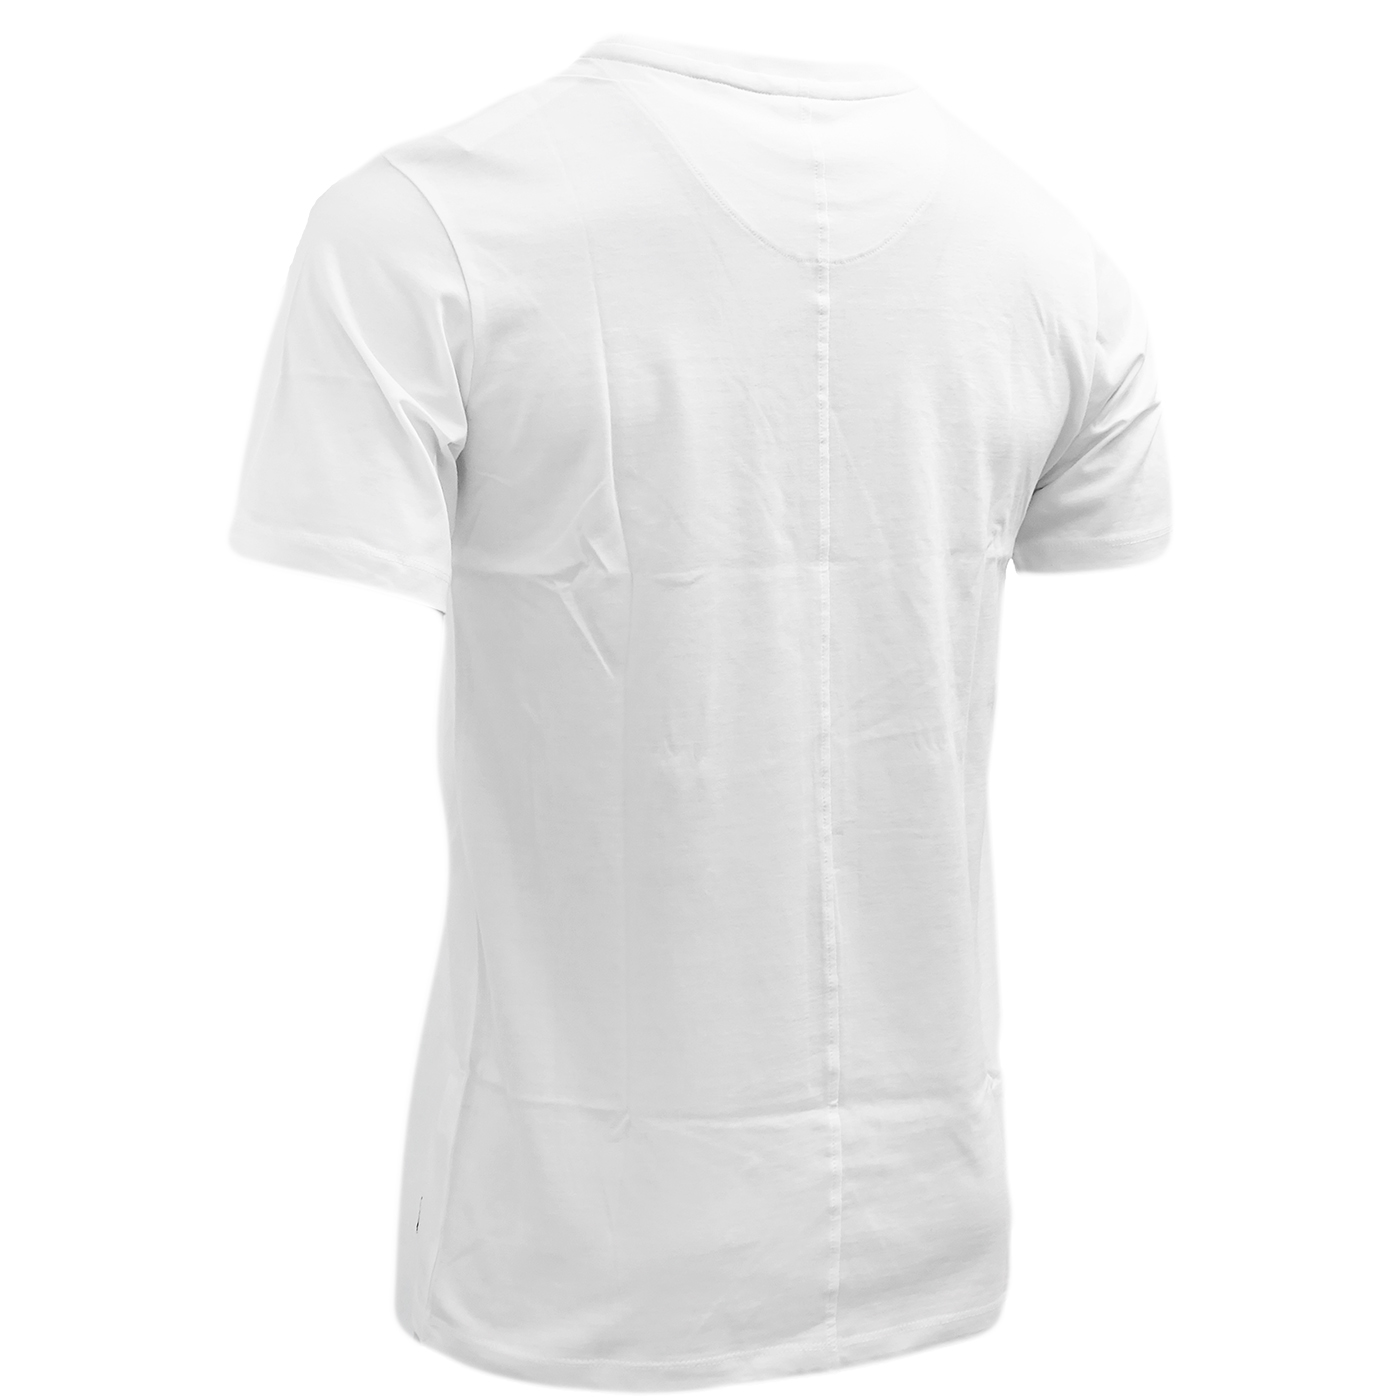 Buy the latest plain white pocket t shirt cheap shop fashion style with free shipping, and check out our daily updated new arrival plain white pocket t shirt at bloggeri.tk